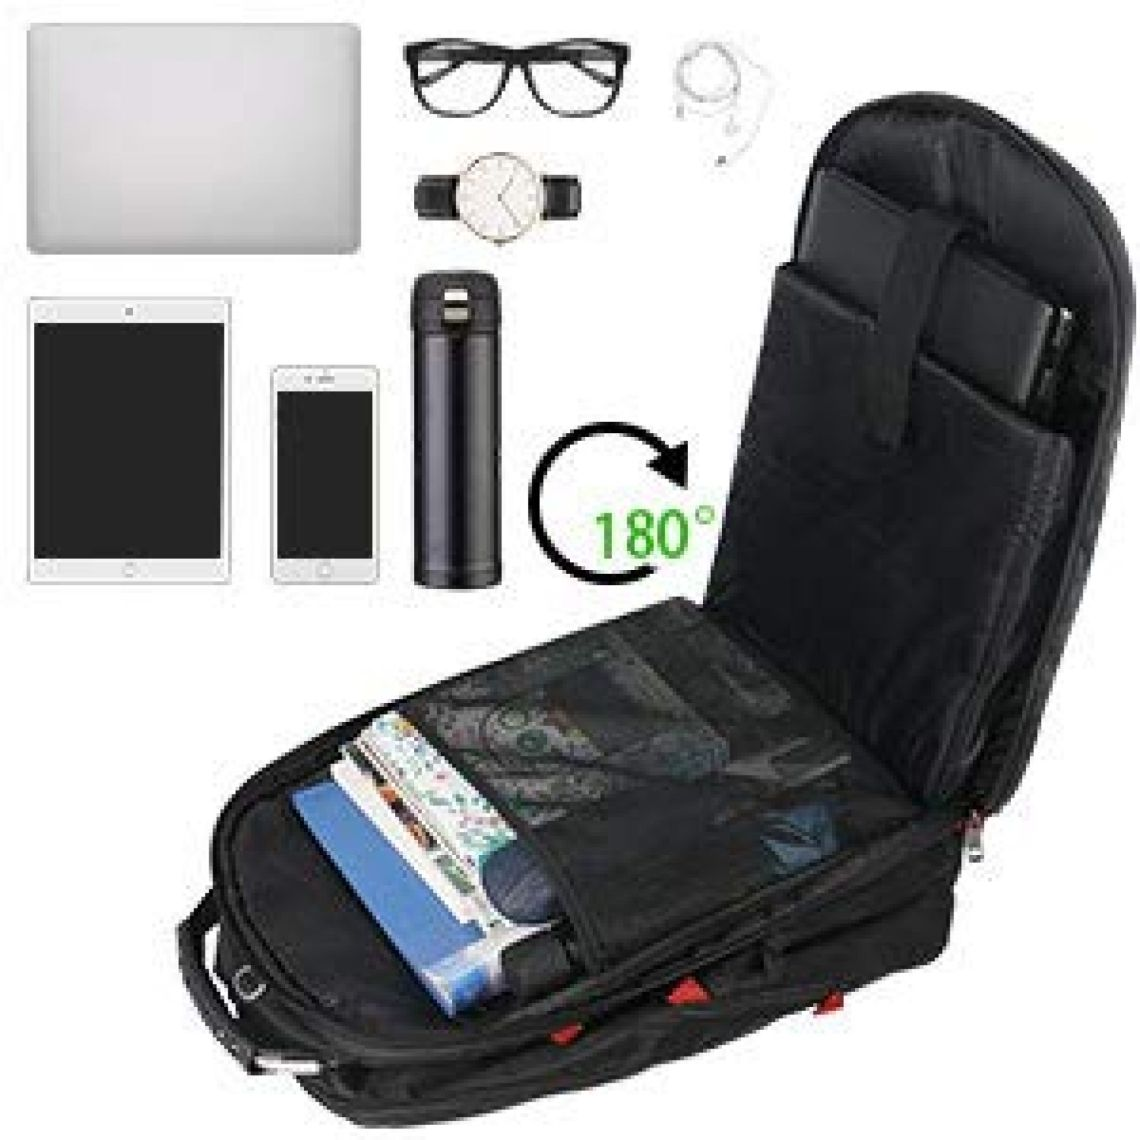 Amazon.com: Extra Large Backpack,TSA Friendly Durable Travel Computer Backpack with USB Charging Port/Headphones Hole for Men&Women,Water-Resistant Business College School Bag Fits Under 17.3 Inch Laptop&Notebook: Computers & Accessories